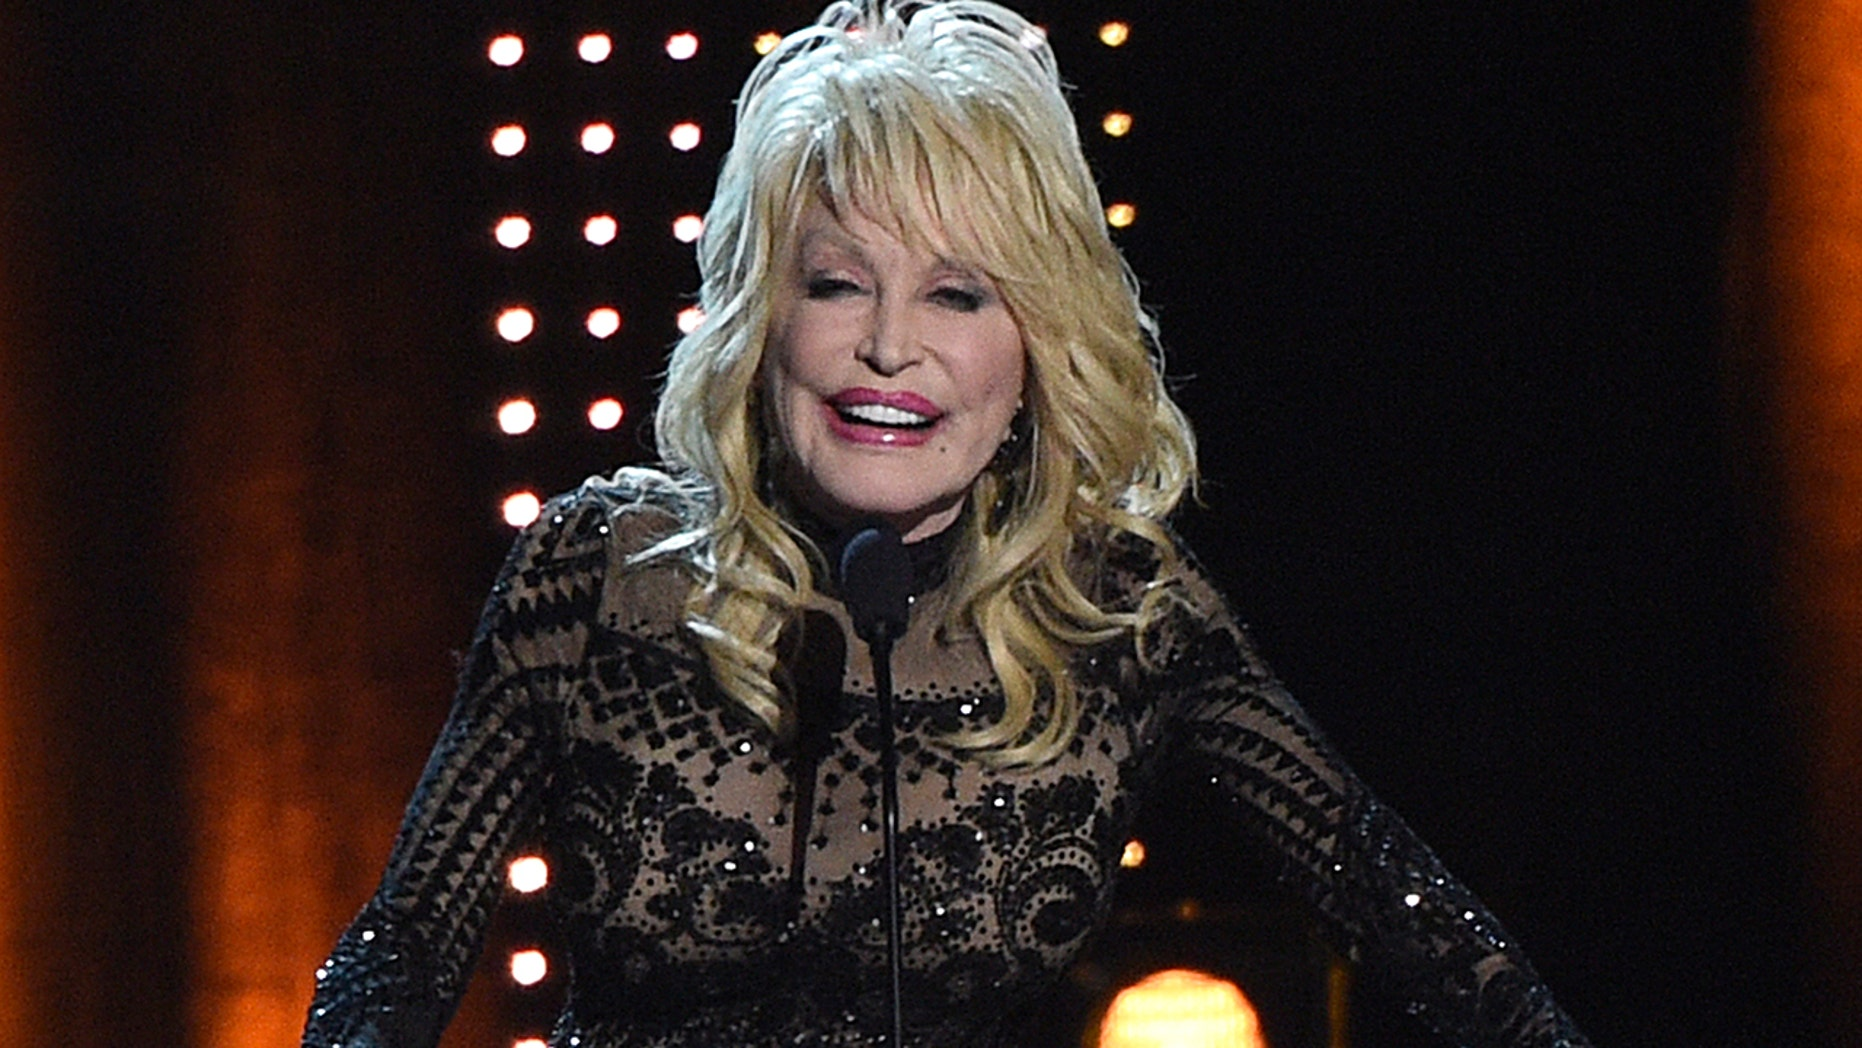 Dolly Parton: Miley Cyrus, Katy Perry And More Stars Salute Dolly Parton